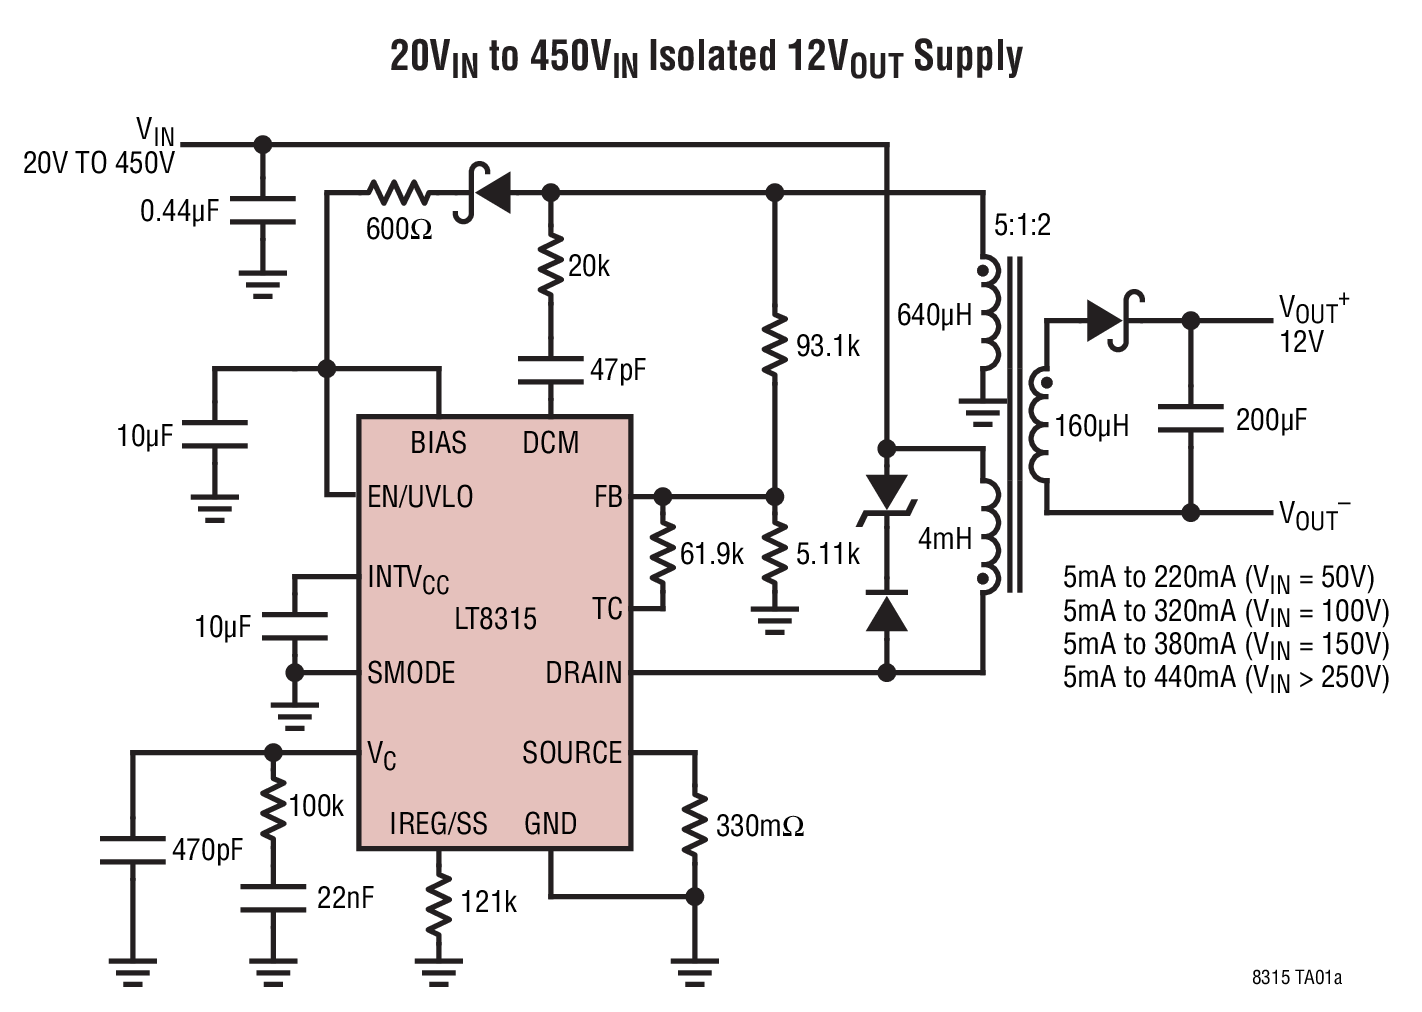 Lt8315 Datasheet The Is A High Voltage Flyback Converter With Linear Opto Isolator Circuits Photo